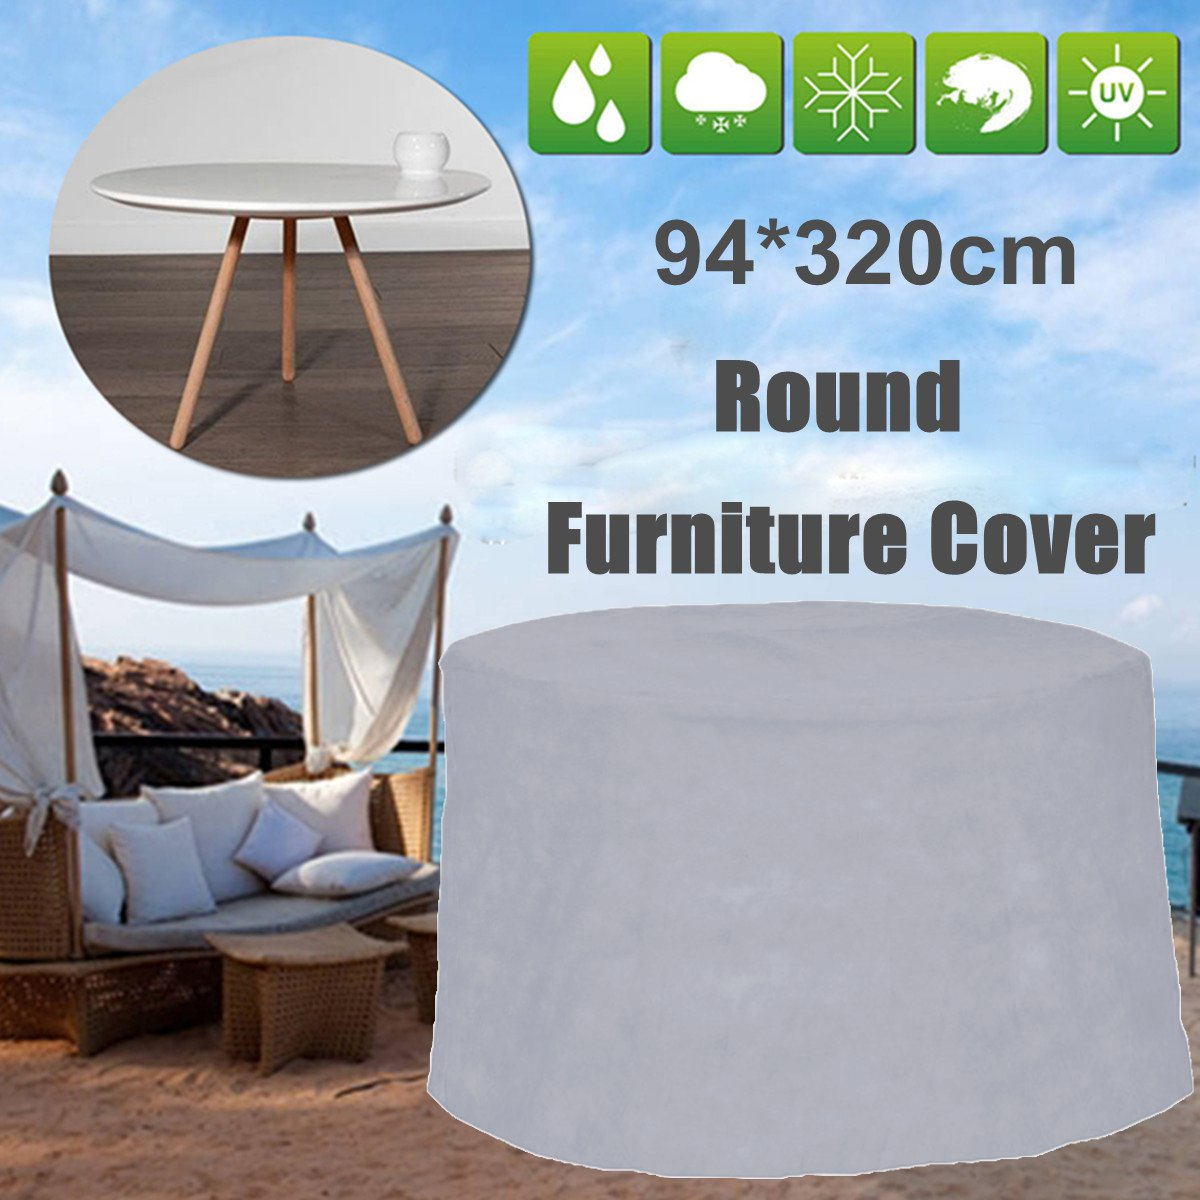 Outdoor Garden Patio Furniture Cover Waterproof Dustproof Desk Table Chair Cover For Sofa Table Chair Dust Proof Cover ProtectOutdoor Garden Patio Furniture Cover Waterproof Dustproof Desk Table Chair Cover For Sofa Table Chair Dust Proof Cover Protect